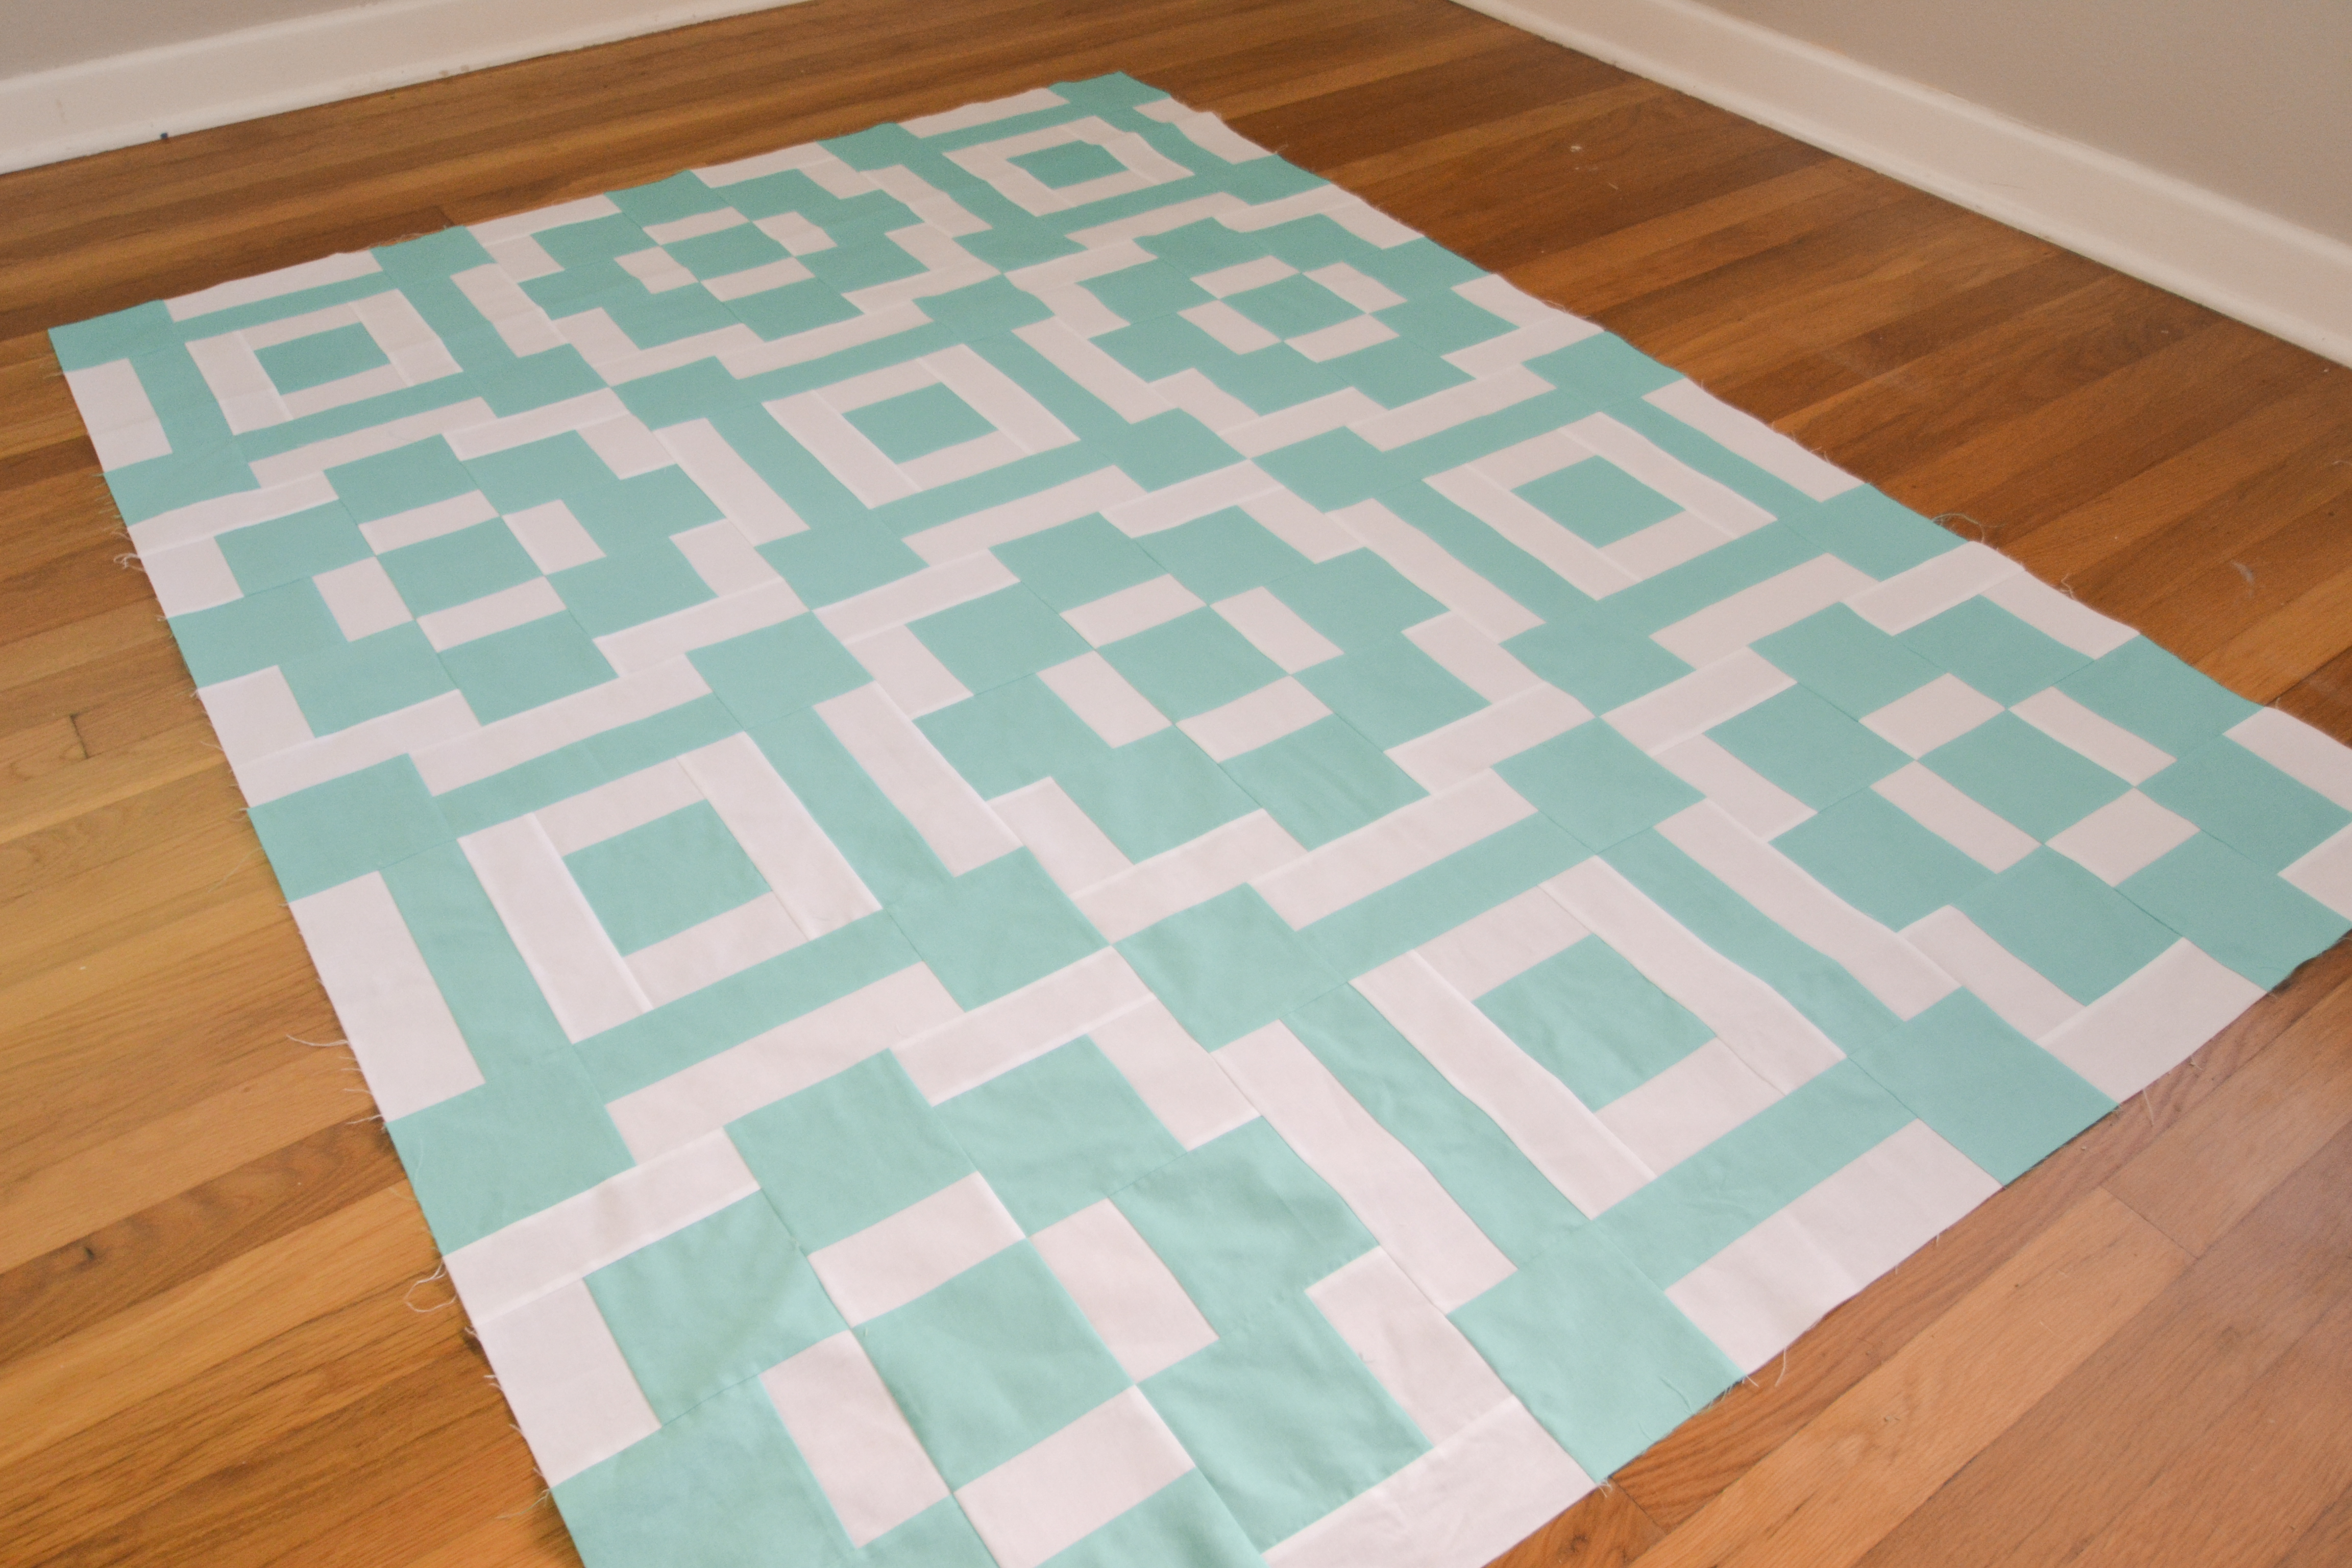 Attention deficit quilter mustlovequilts for Floor quilt for babies